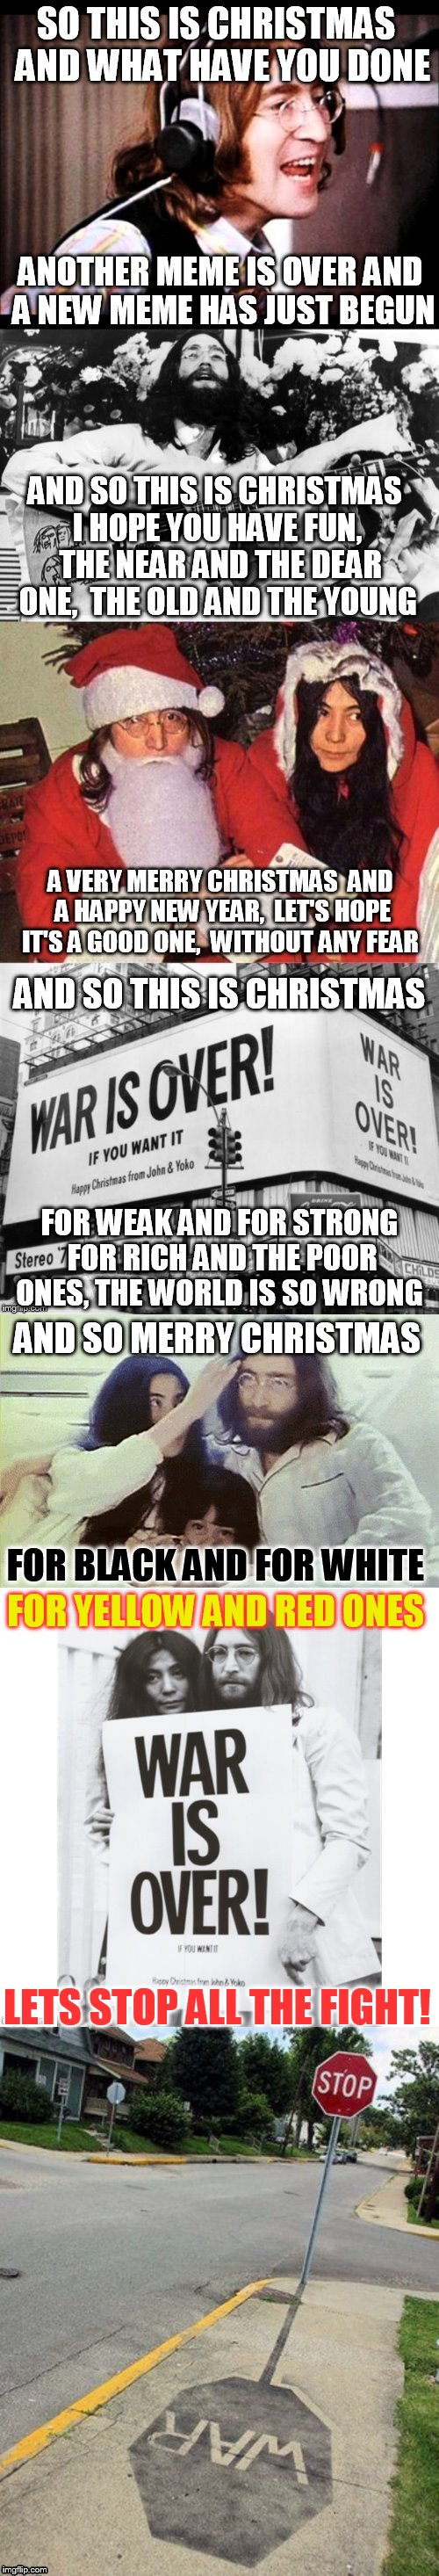 Merry Christmas, Happy Hanukkah, and Happy Holidays to all my IMG Family!  | AND SO MERRY CHRISTMAS FOR BLACK AND FOR WHITE FOR YELLOW AND RED ONES LETS STOP ALL THE FIGHT! | image tagged in john lennon,war is over,christmas memes,merry christmas,happy holidays,songs | made w/ Imgflip meme maker